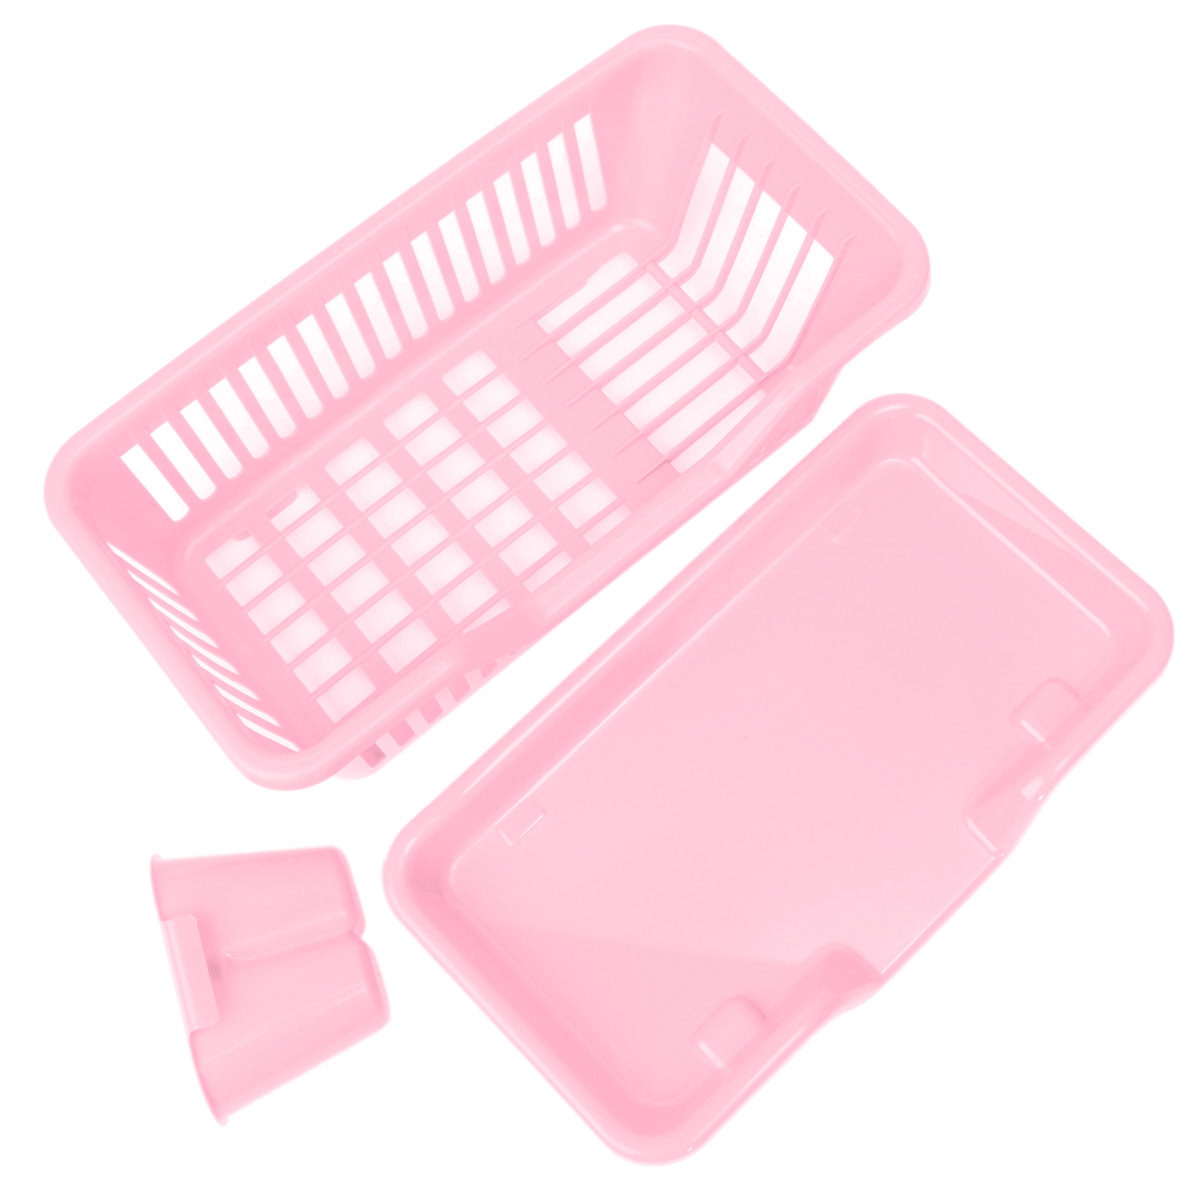 drying rack singapore with 4 Color Kitchen Dish Sink Drainer Drying Rack Wash Holder Basketorganizer Tray Pink Intl 8550404 on 4 Color Kitchen Dish Sink Drainer Drying Rack Wash Holder Basketorganizer Tray Pink Intl 8550404 together with  also 2pcs Stainless Roll Kitchen Sink Storage Dish Drainer Fruit Dryshelves Rack Holder Green 48 X 23cm 9528061 together with Home Kitchen Wooden Mug Coffee Cups Drying Storage Rack Holder Hanger Organizer as well Clothes Drying Rack Singapore.